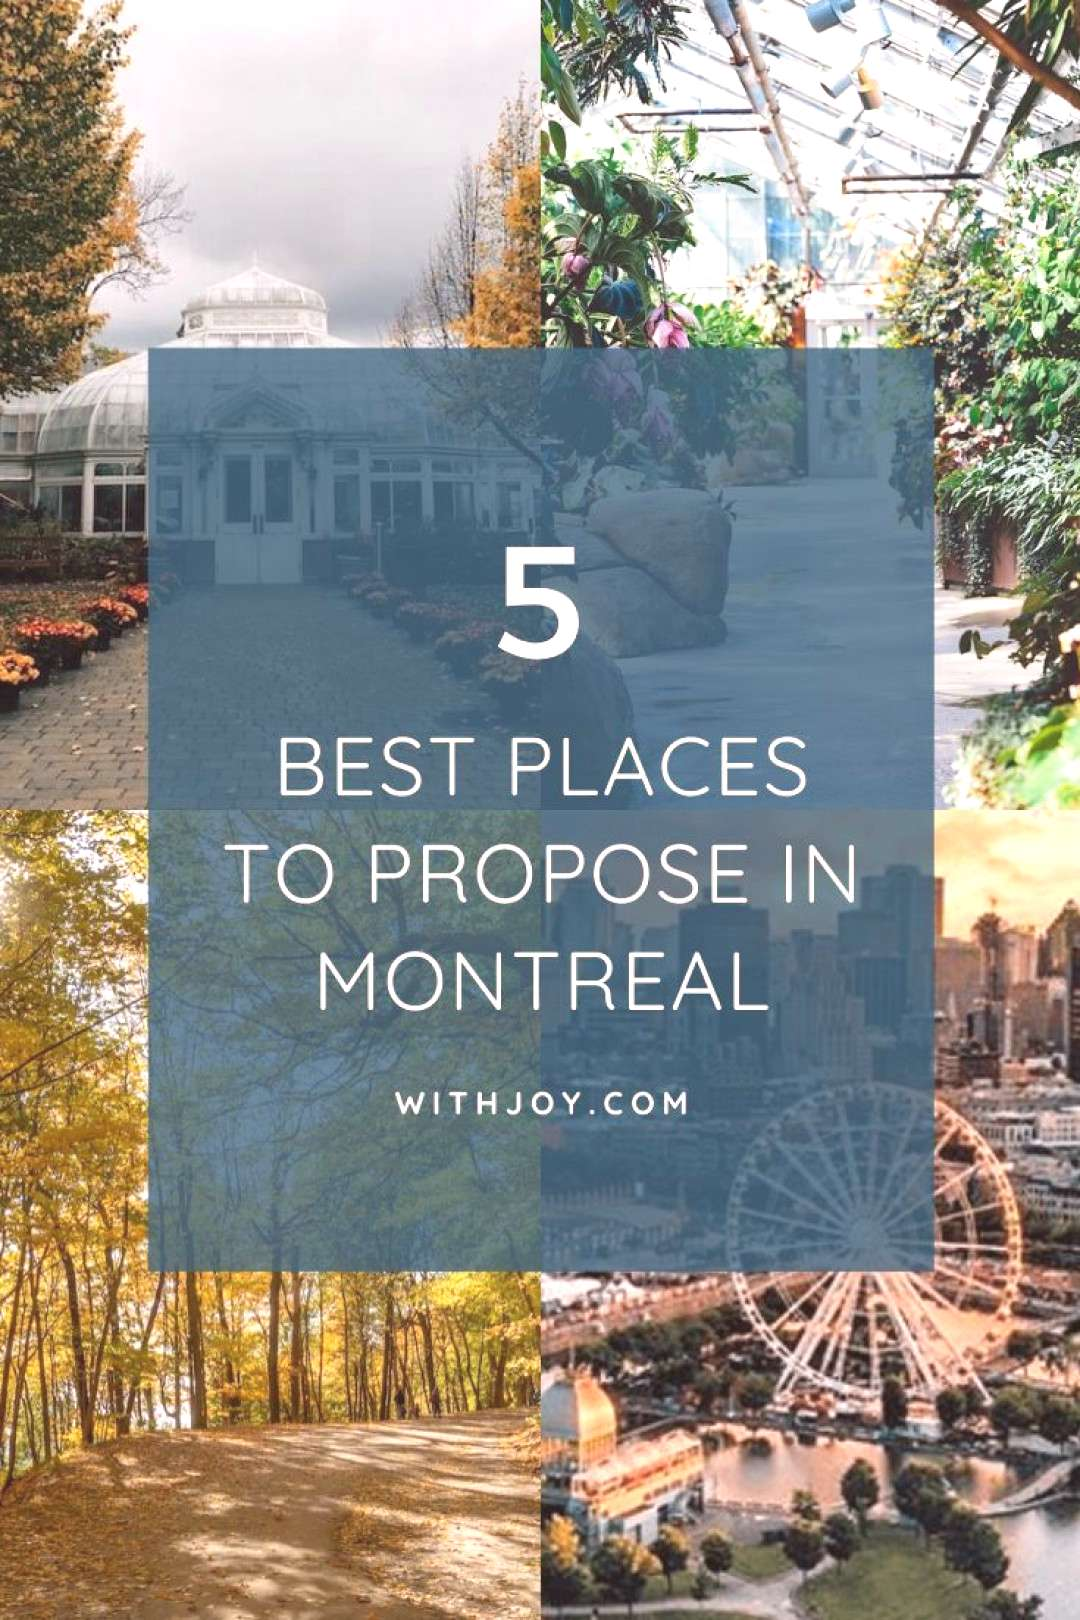 The 5 Best Places to Propose in Montreal - Joy As the largest city in Canada's Quebec province, M